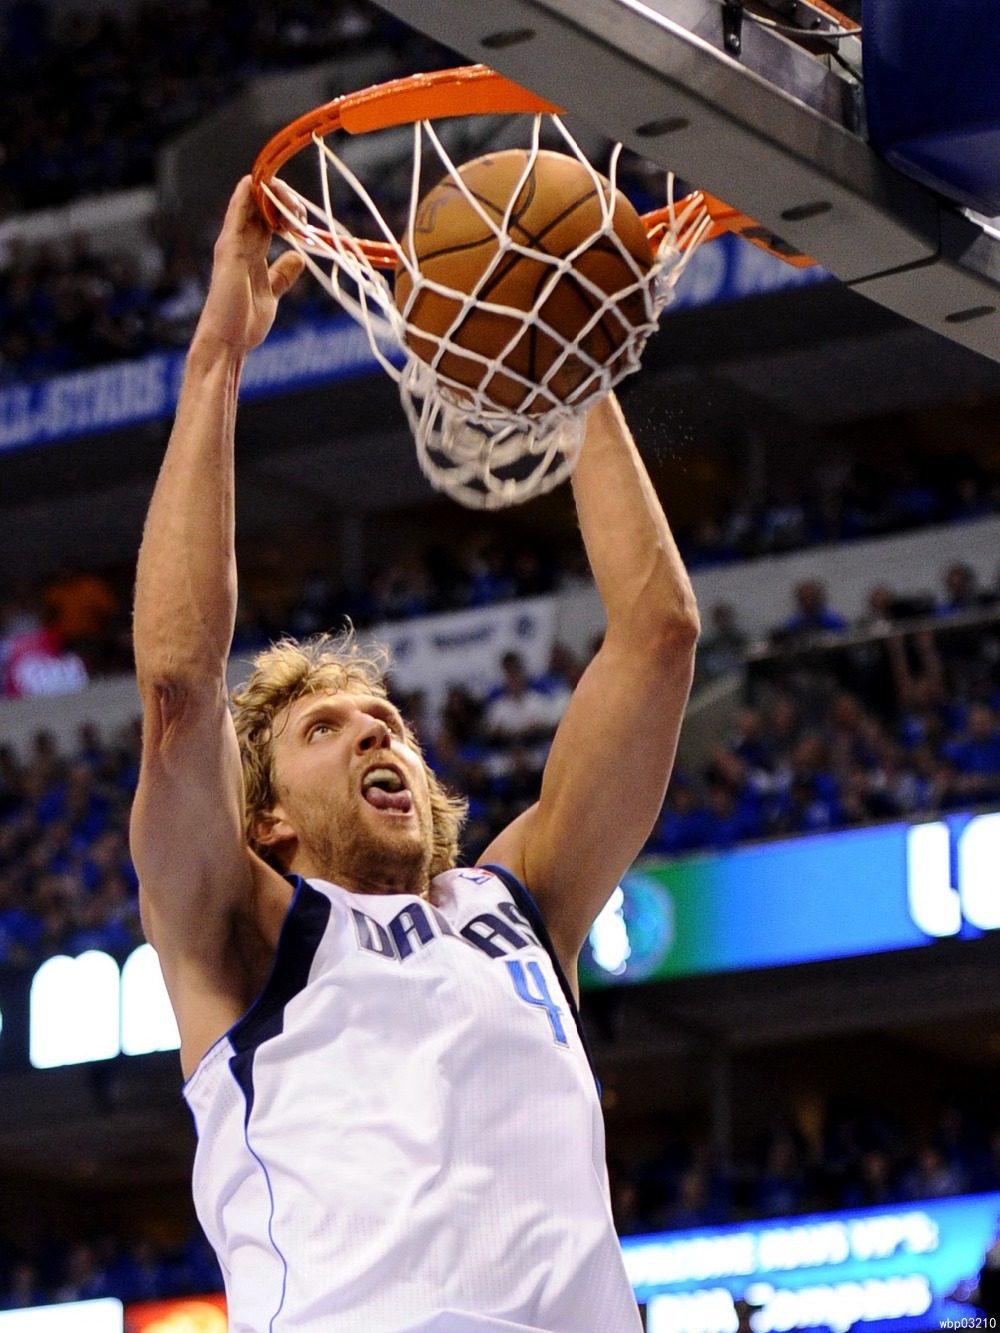 Dirk Nowitzki Dunk Dallas Mavericks Basketball Art Huge Poster TXHOME D5656(China (Mainland))